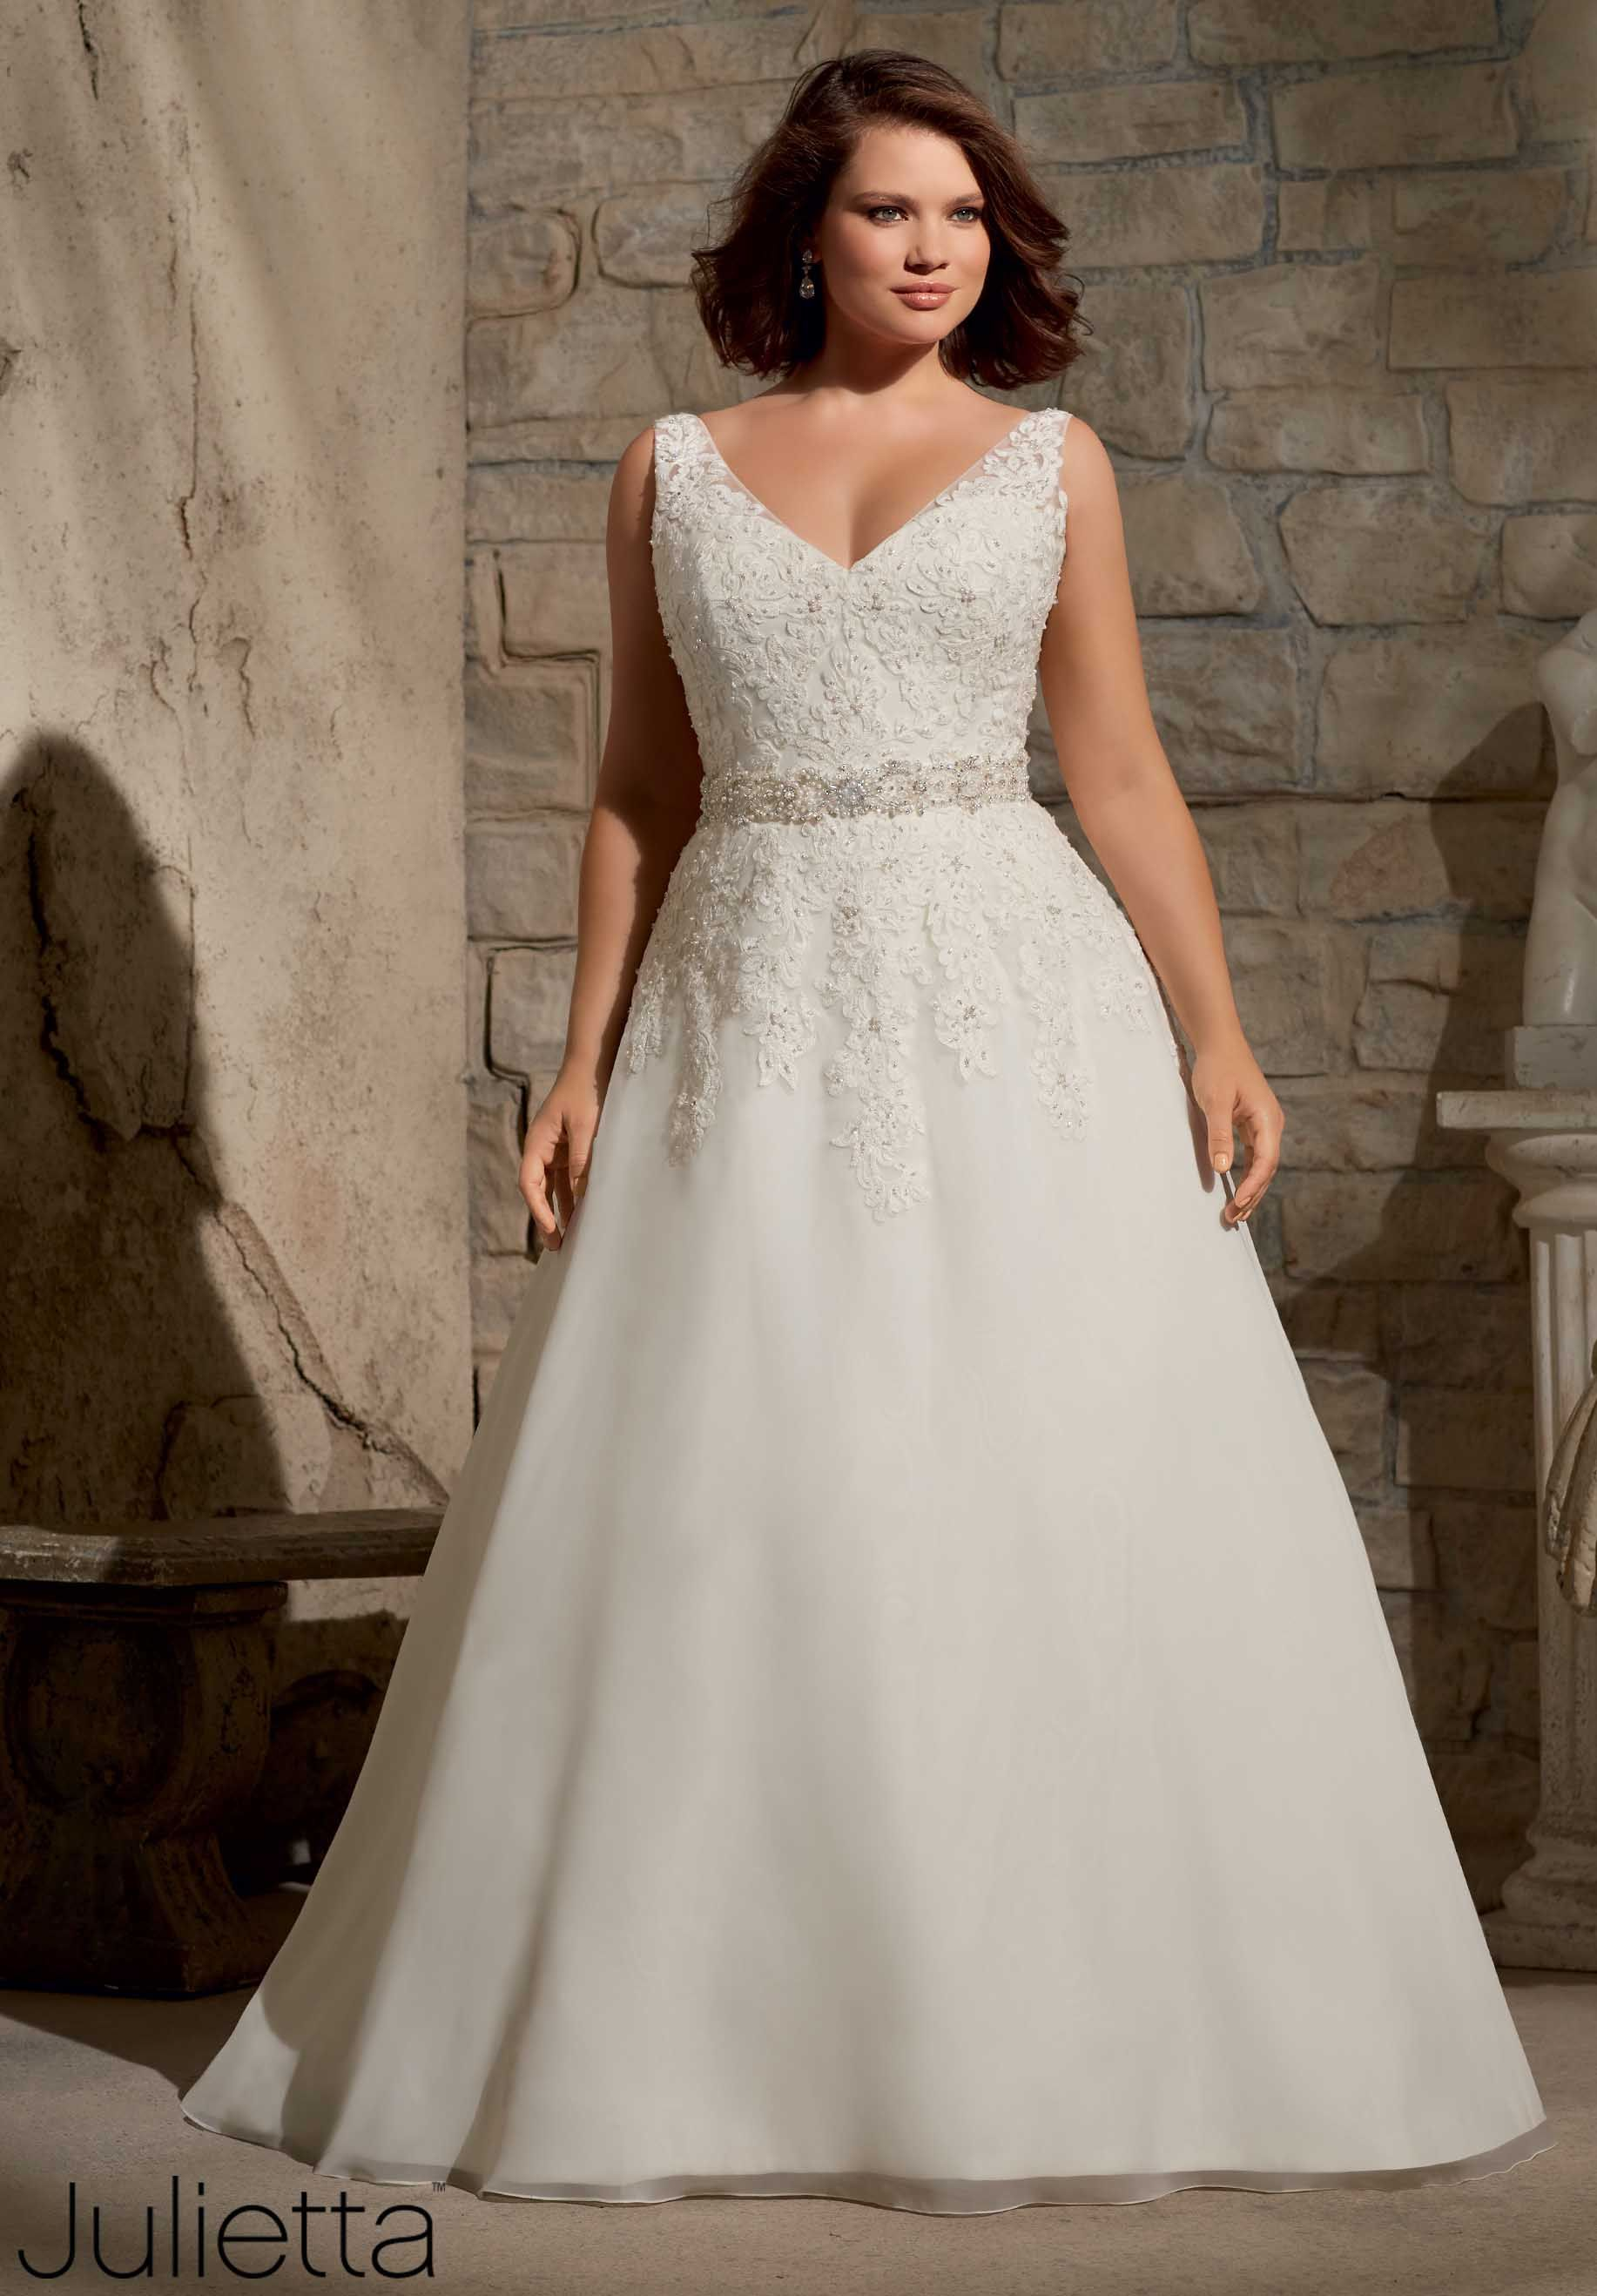 Discover The Julietta By Mori Lee 3173 Bridal Gown Find Exceptional Gowns At Wedding Shoppe